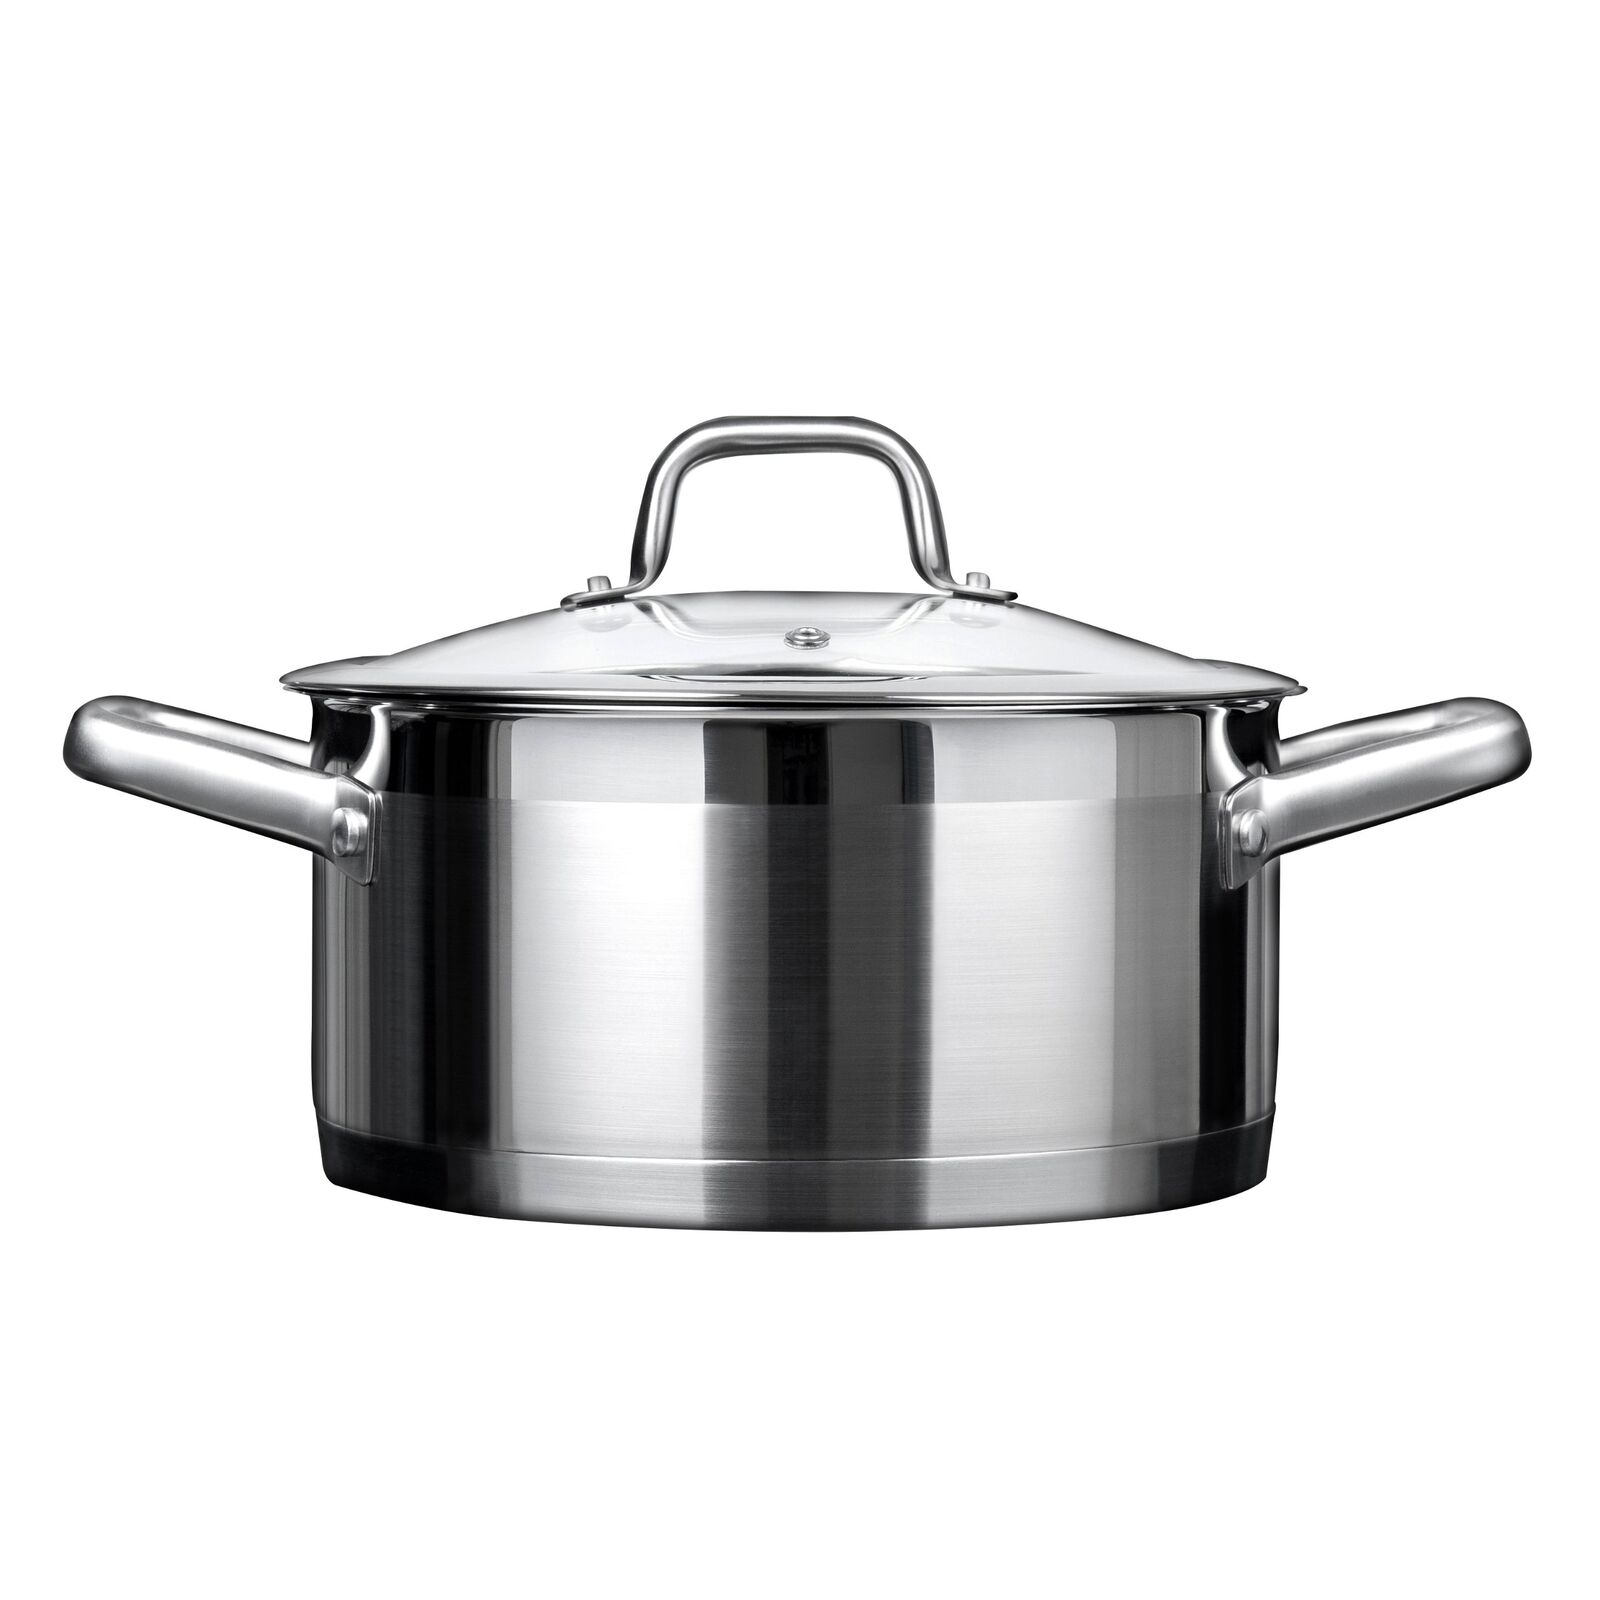 Duxtop Professional Stainless steel Cookware Induction Ready Impact-bonded